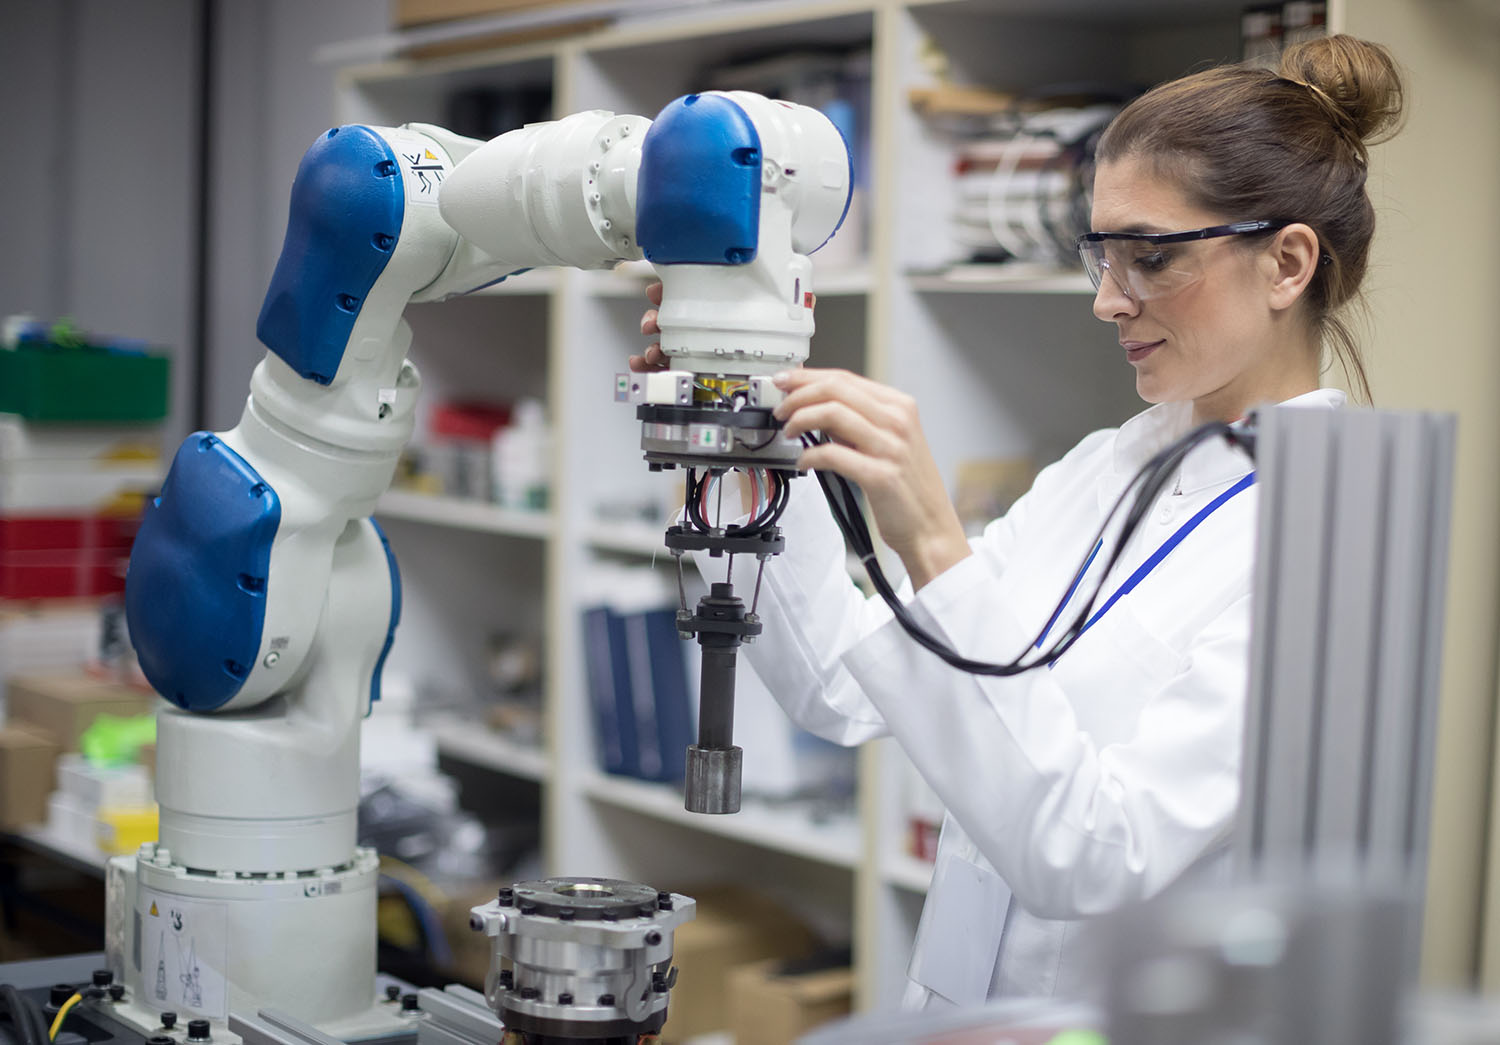 Woman engineer working on a robotic arm